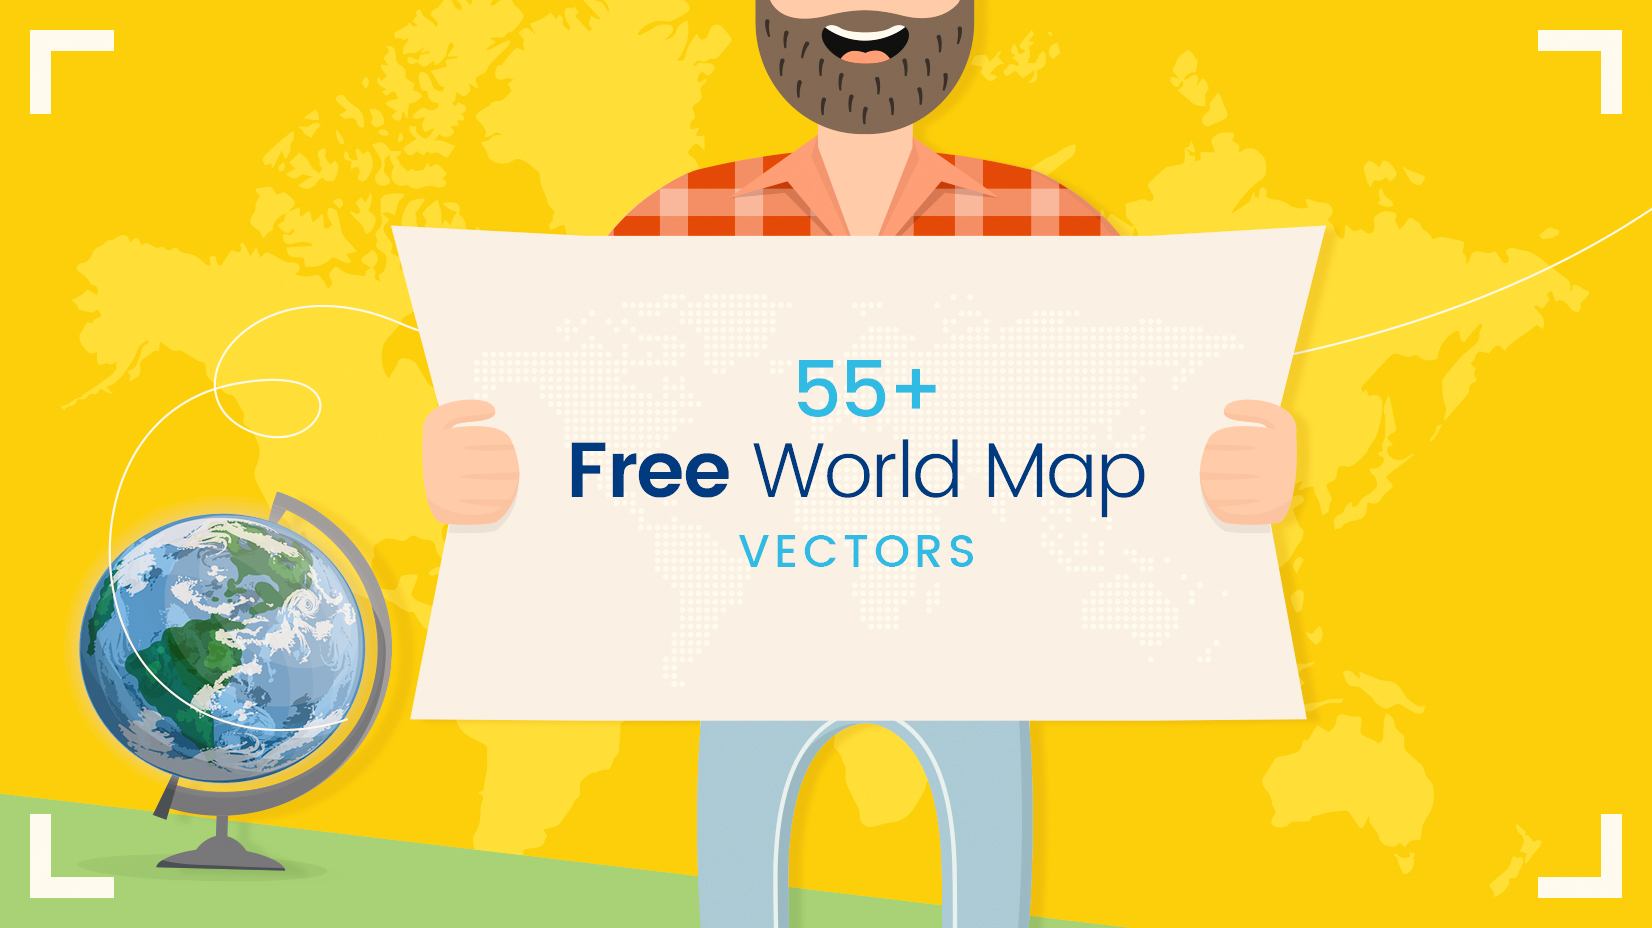 Free world map vector collection 55 different designs graphicmama free world map vector collection over 55 different designs gumiabroncs Images